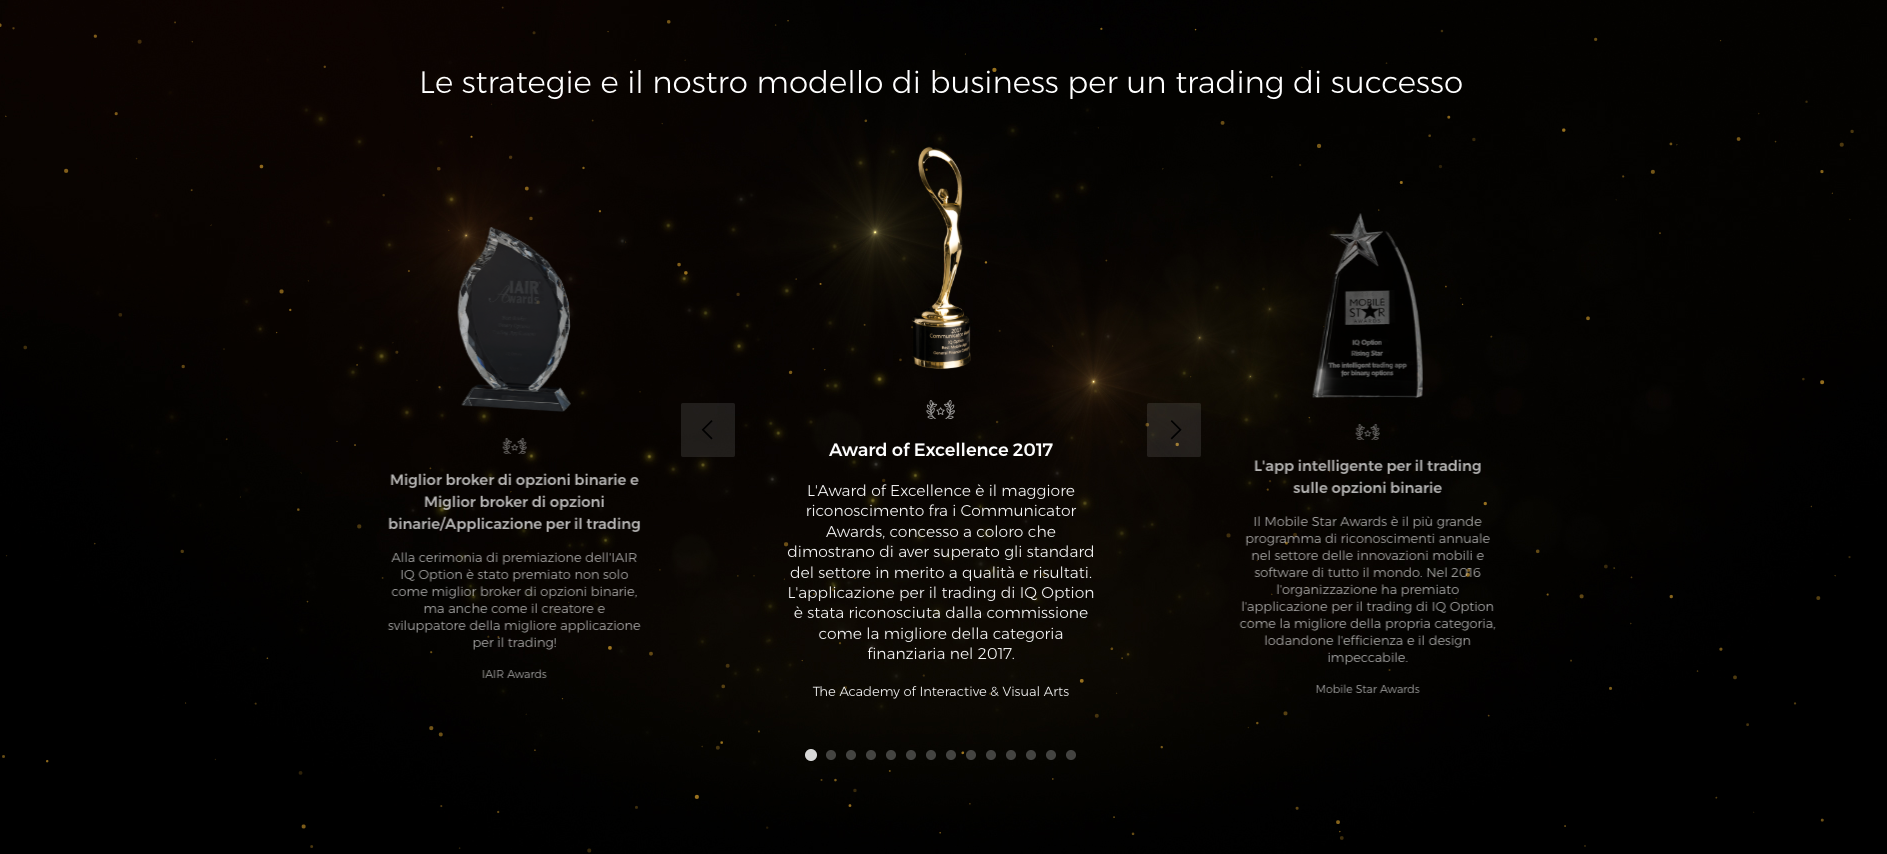 Guida Trading Bitcoin con iQ option: Strategie e modello di business